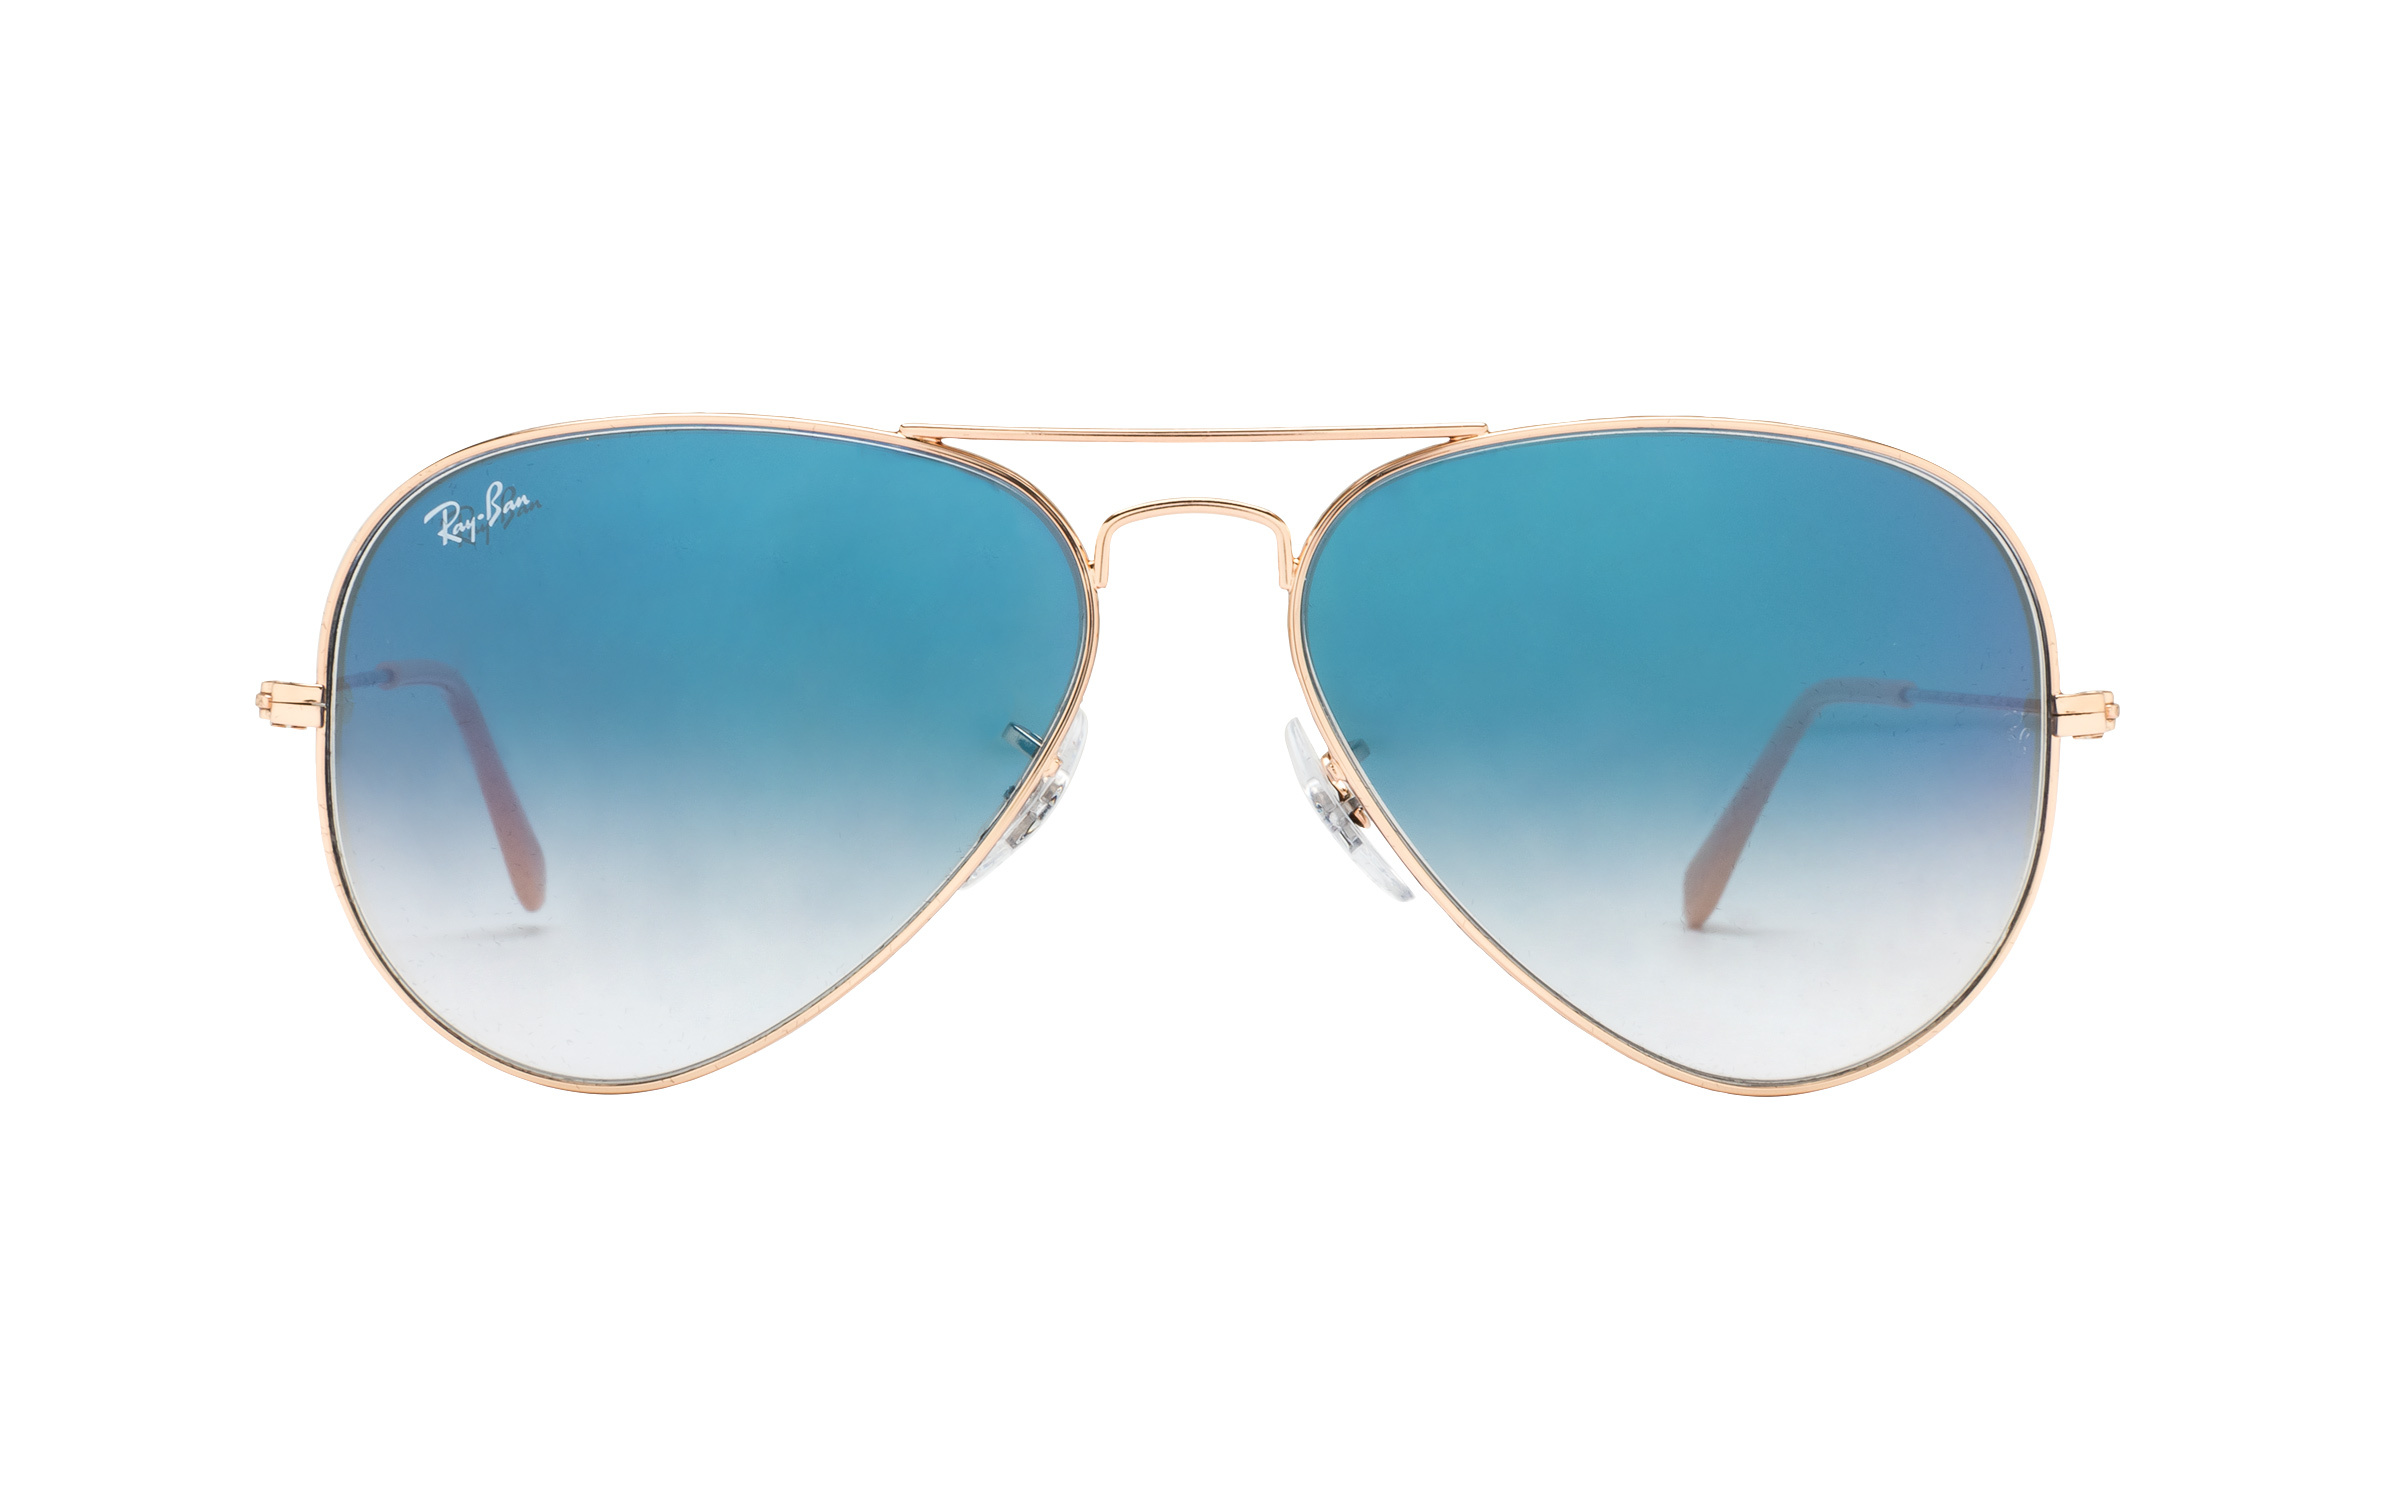 RayBan Ray-Ban RB3025 001/3F 58 Sunglasses in Gold | Plastic - Online Coastal